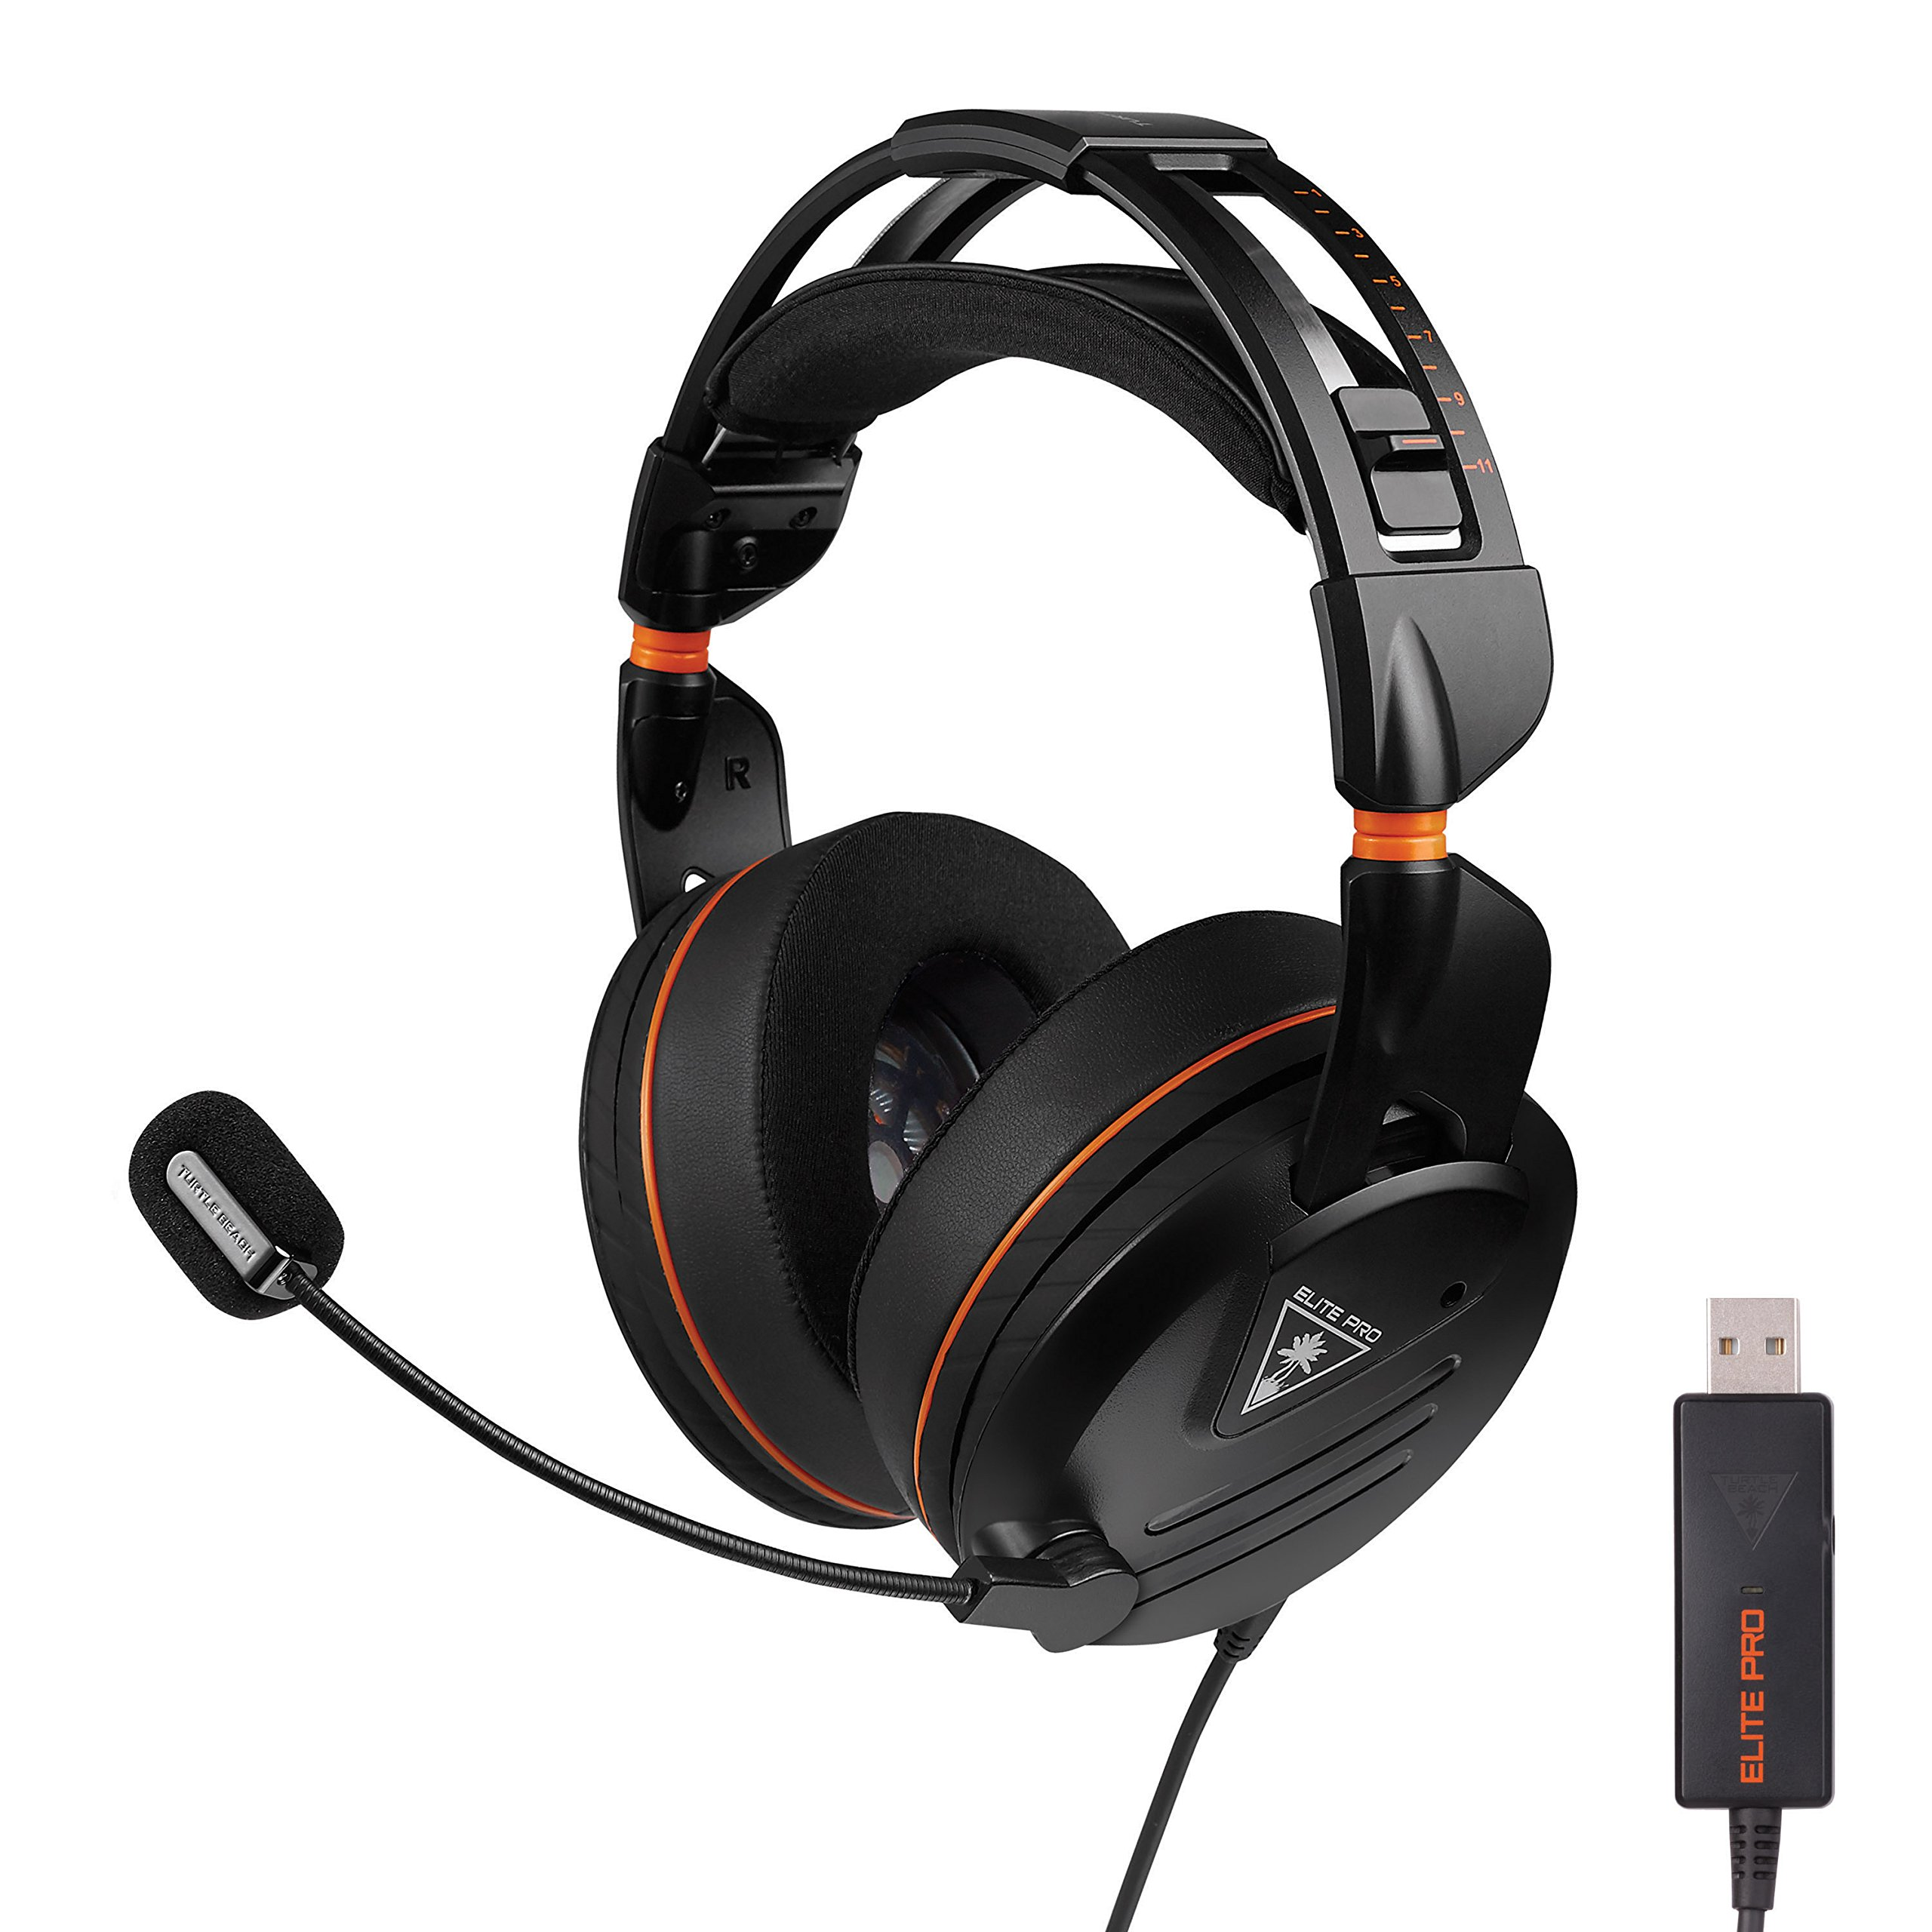 Elite Pro Professional Surround Sound Gaming Headset - PC Edition - PC, PS4, PS4 Pro, Xbox One, and Mobile Gaming